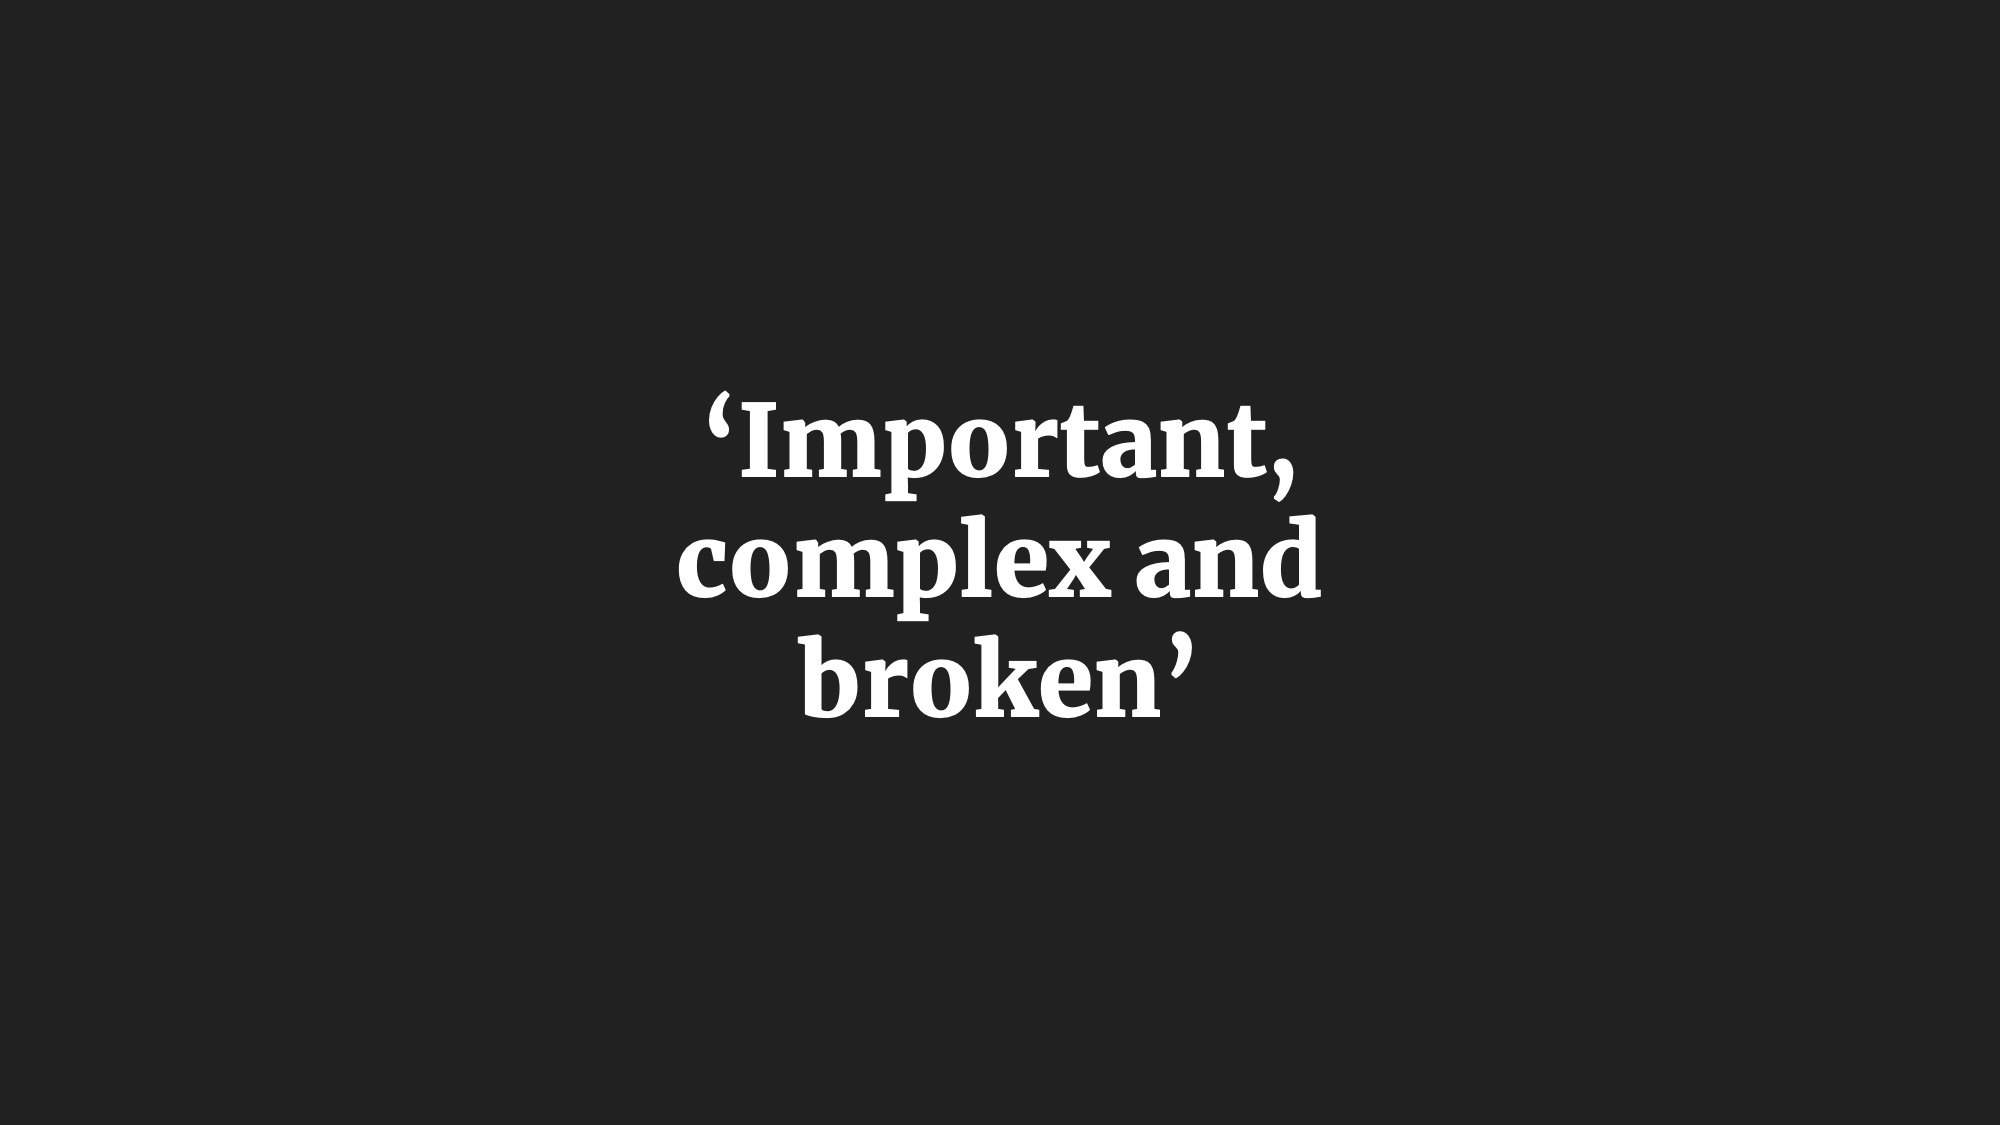 'Important, complex and broken'